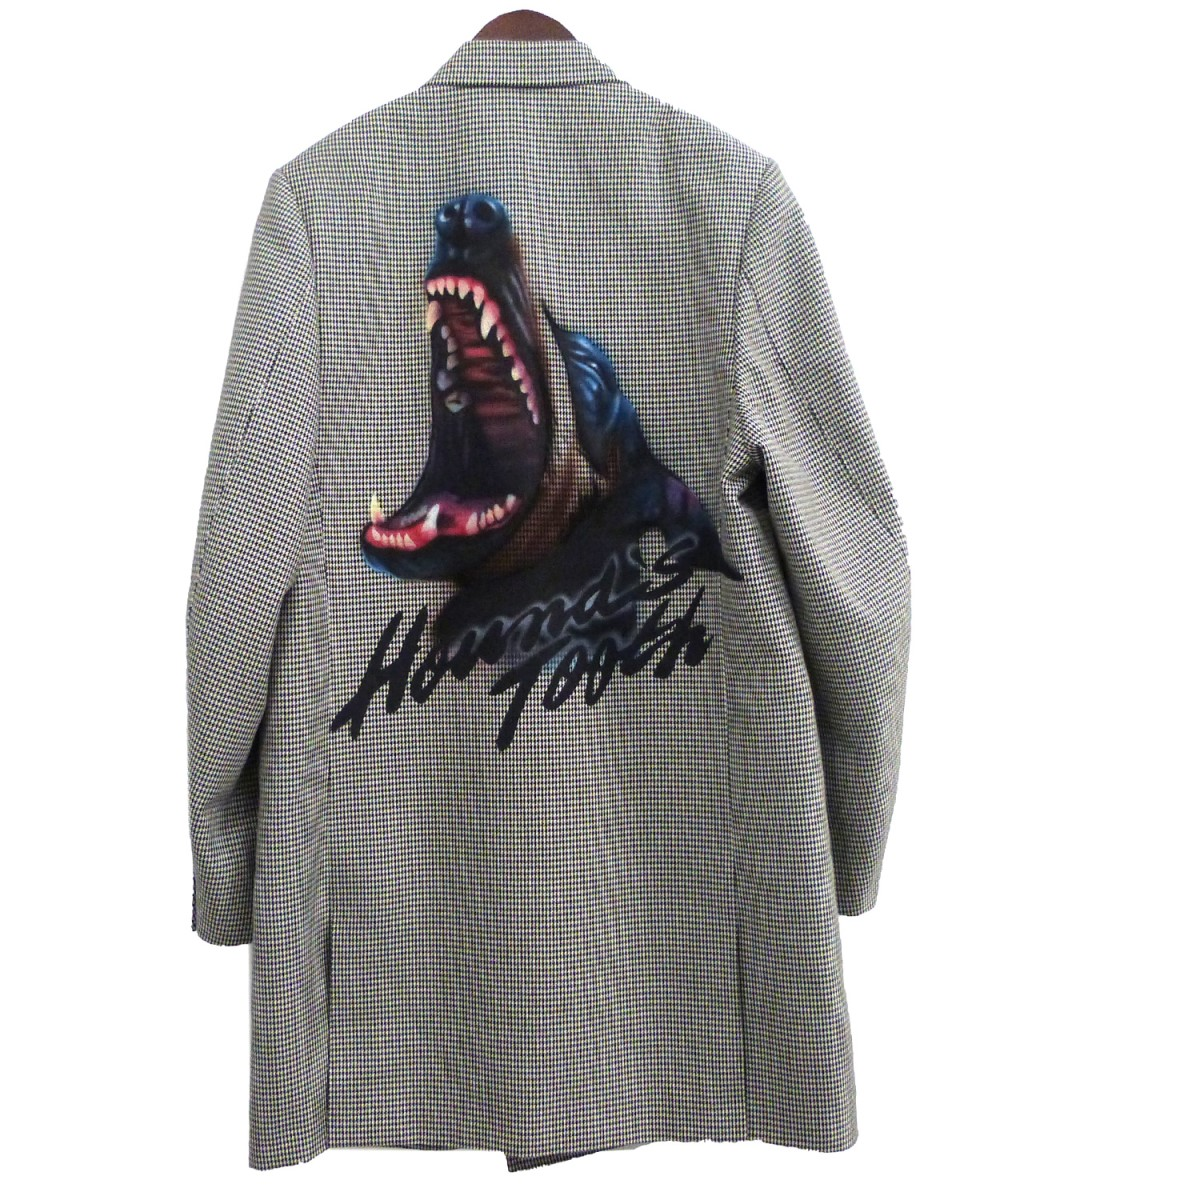 【中古】doublet 20SS「Pe/W HAND-PAINTED LONG TAILORED JACKET」 グレー サイズ:S 【290620】(ダブレット)